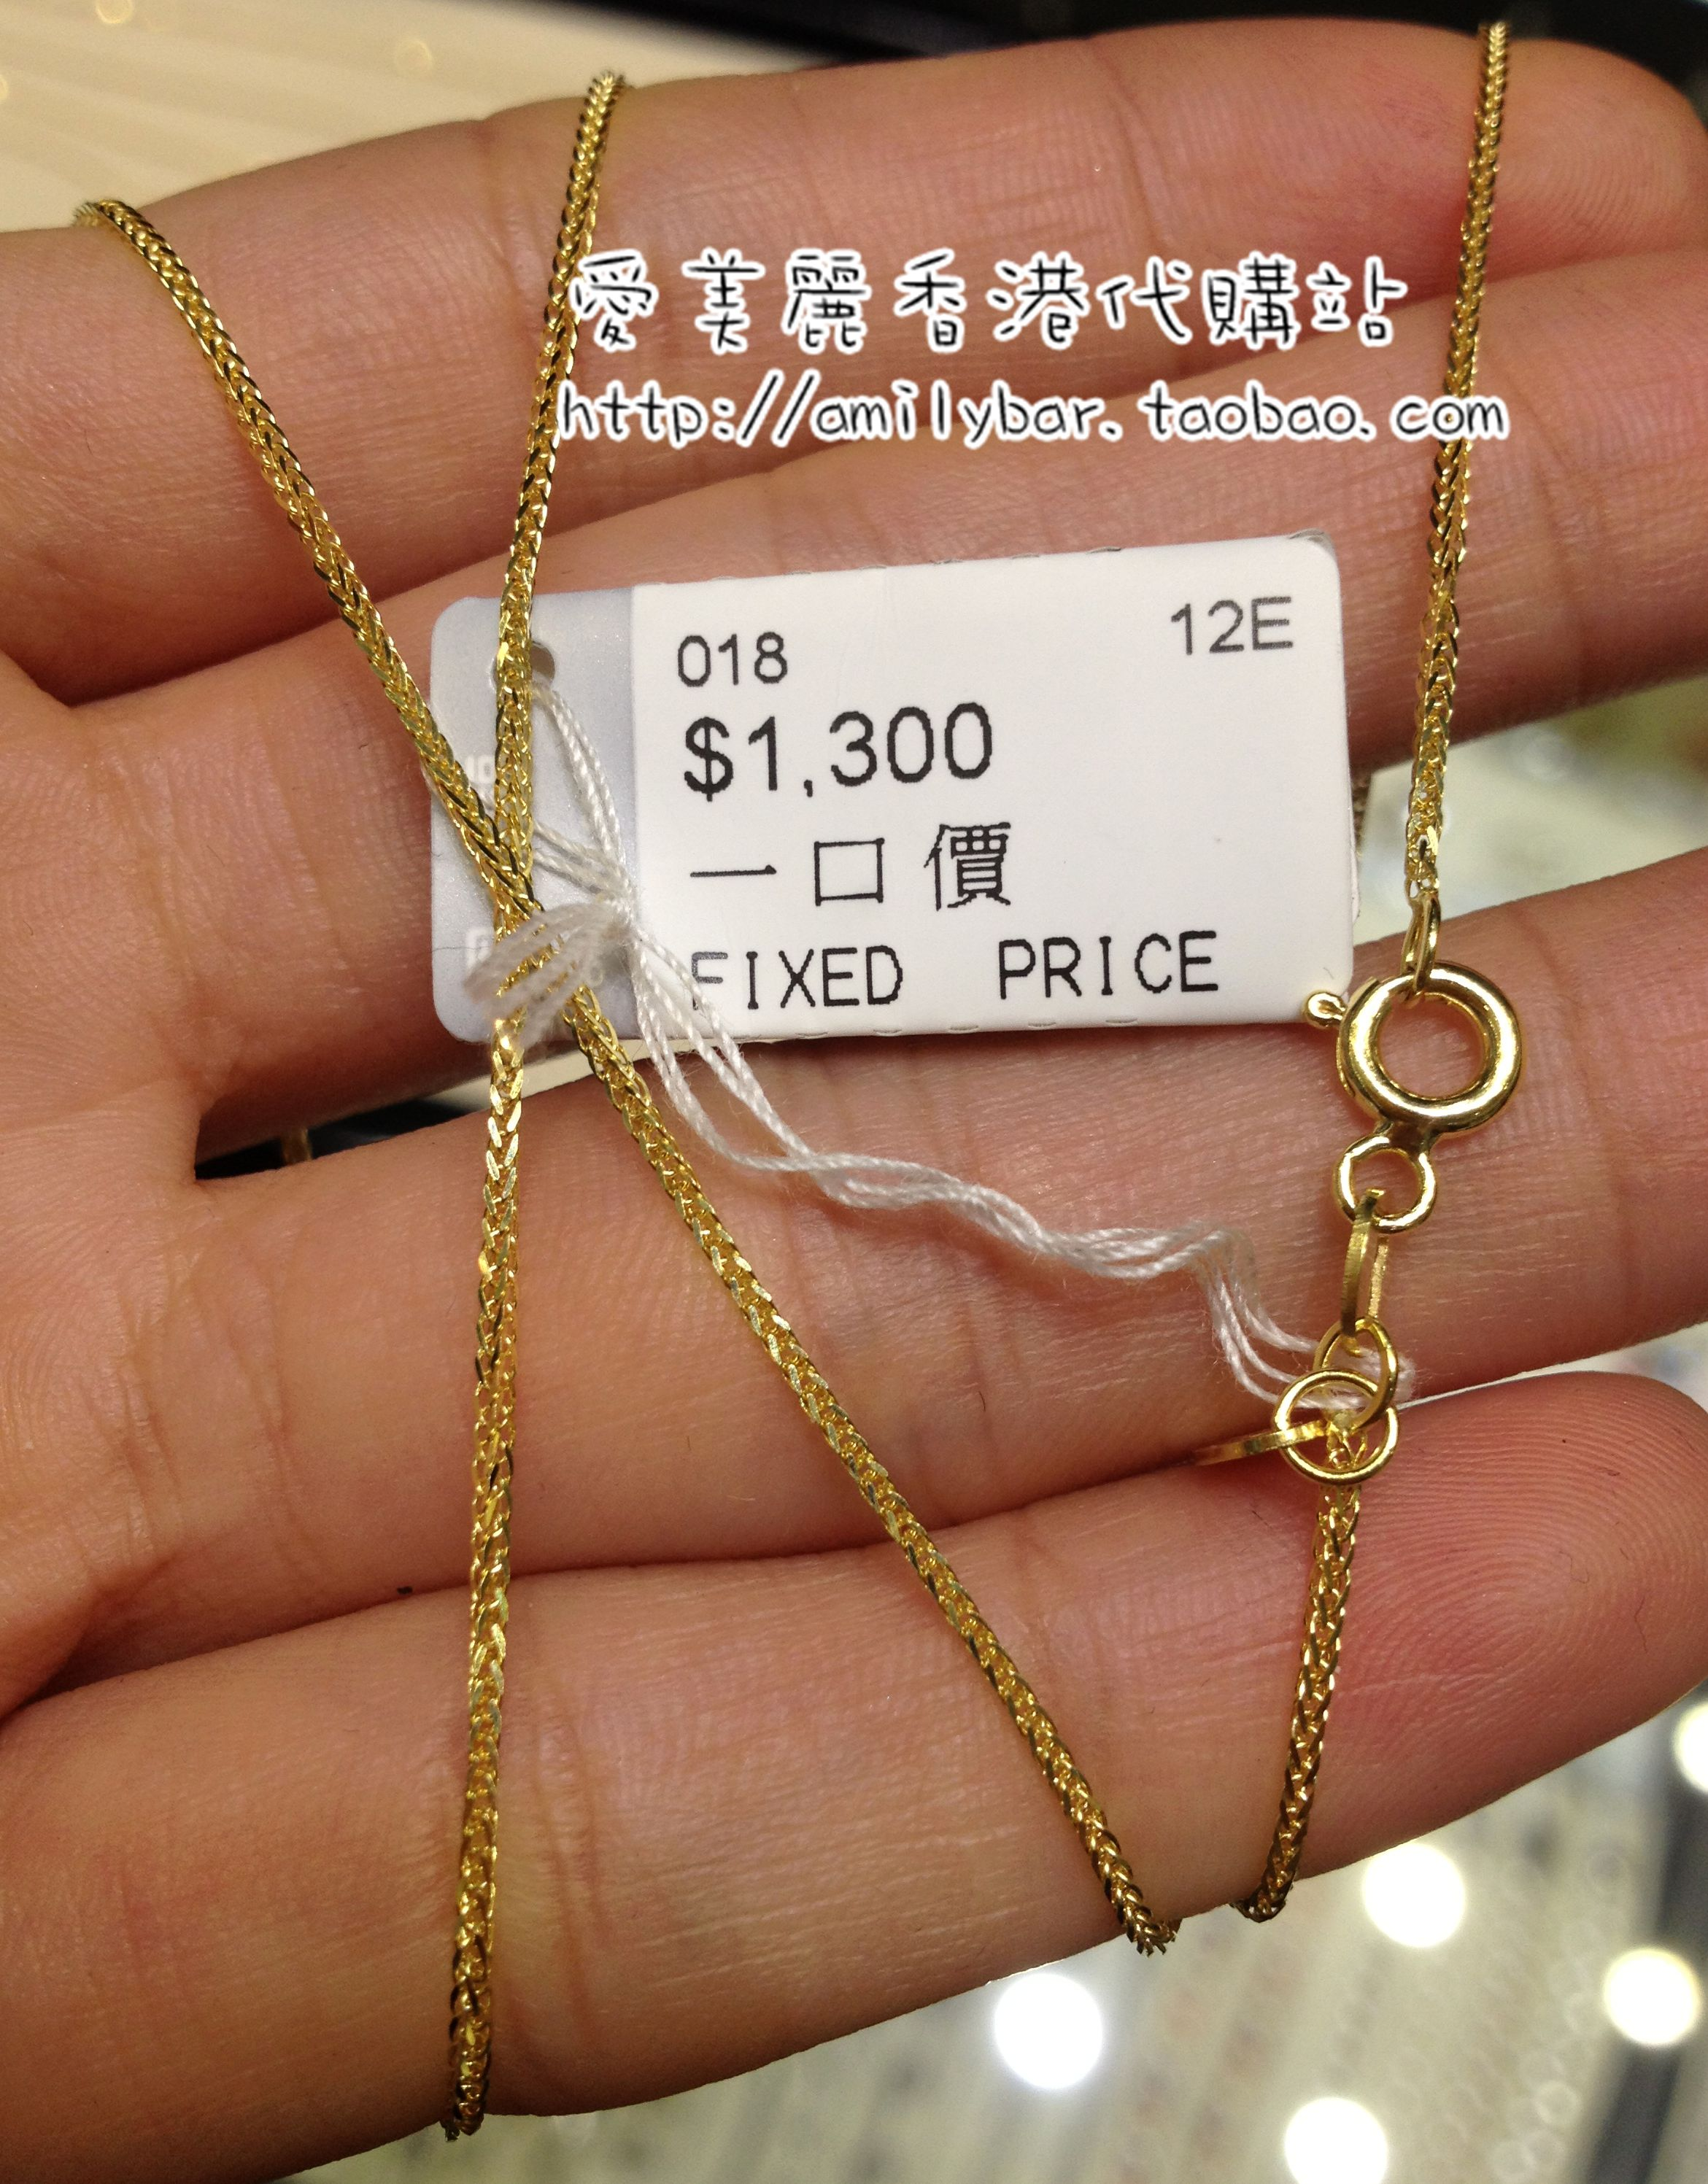 Hong Kong 18k Yellow Gold Chopin Chain 16 Inch 18 Necklace One Price Deposit